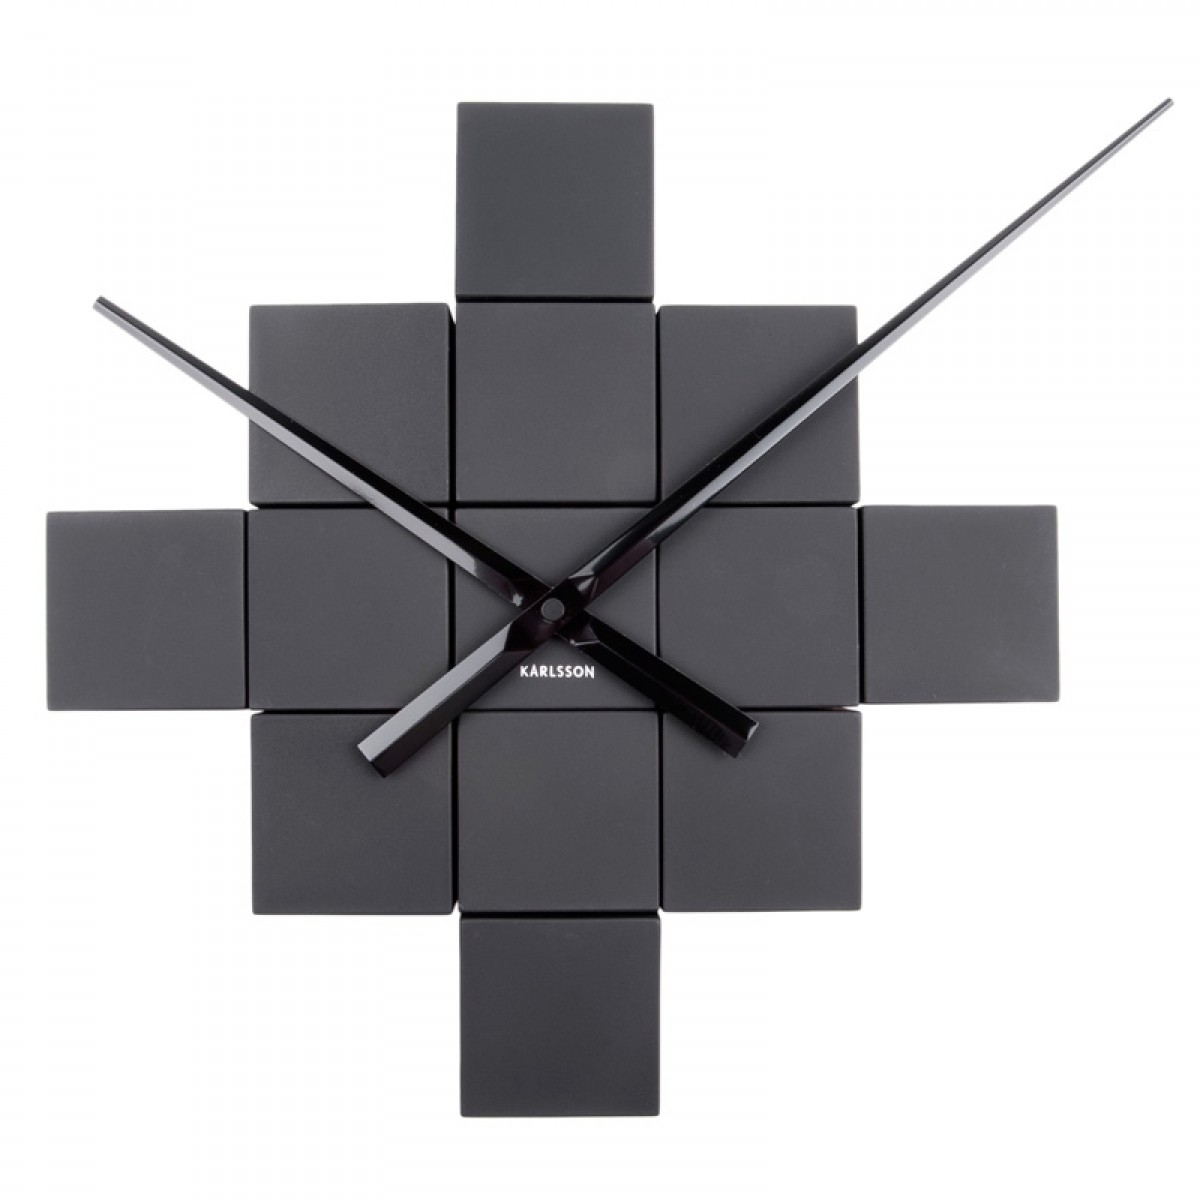 Cubic wall clock image collections home wall decoration ideas karlsson diy cubic wall clock black modular wall clock amipublicfo image collections amipublicfo Images